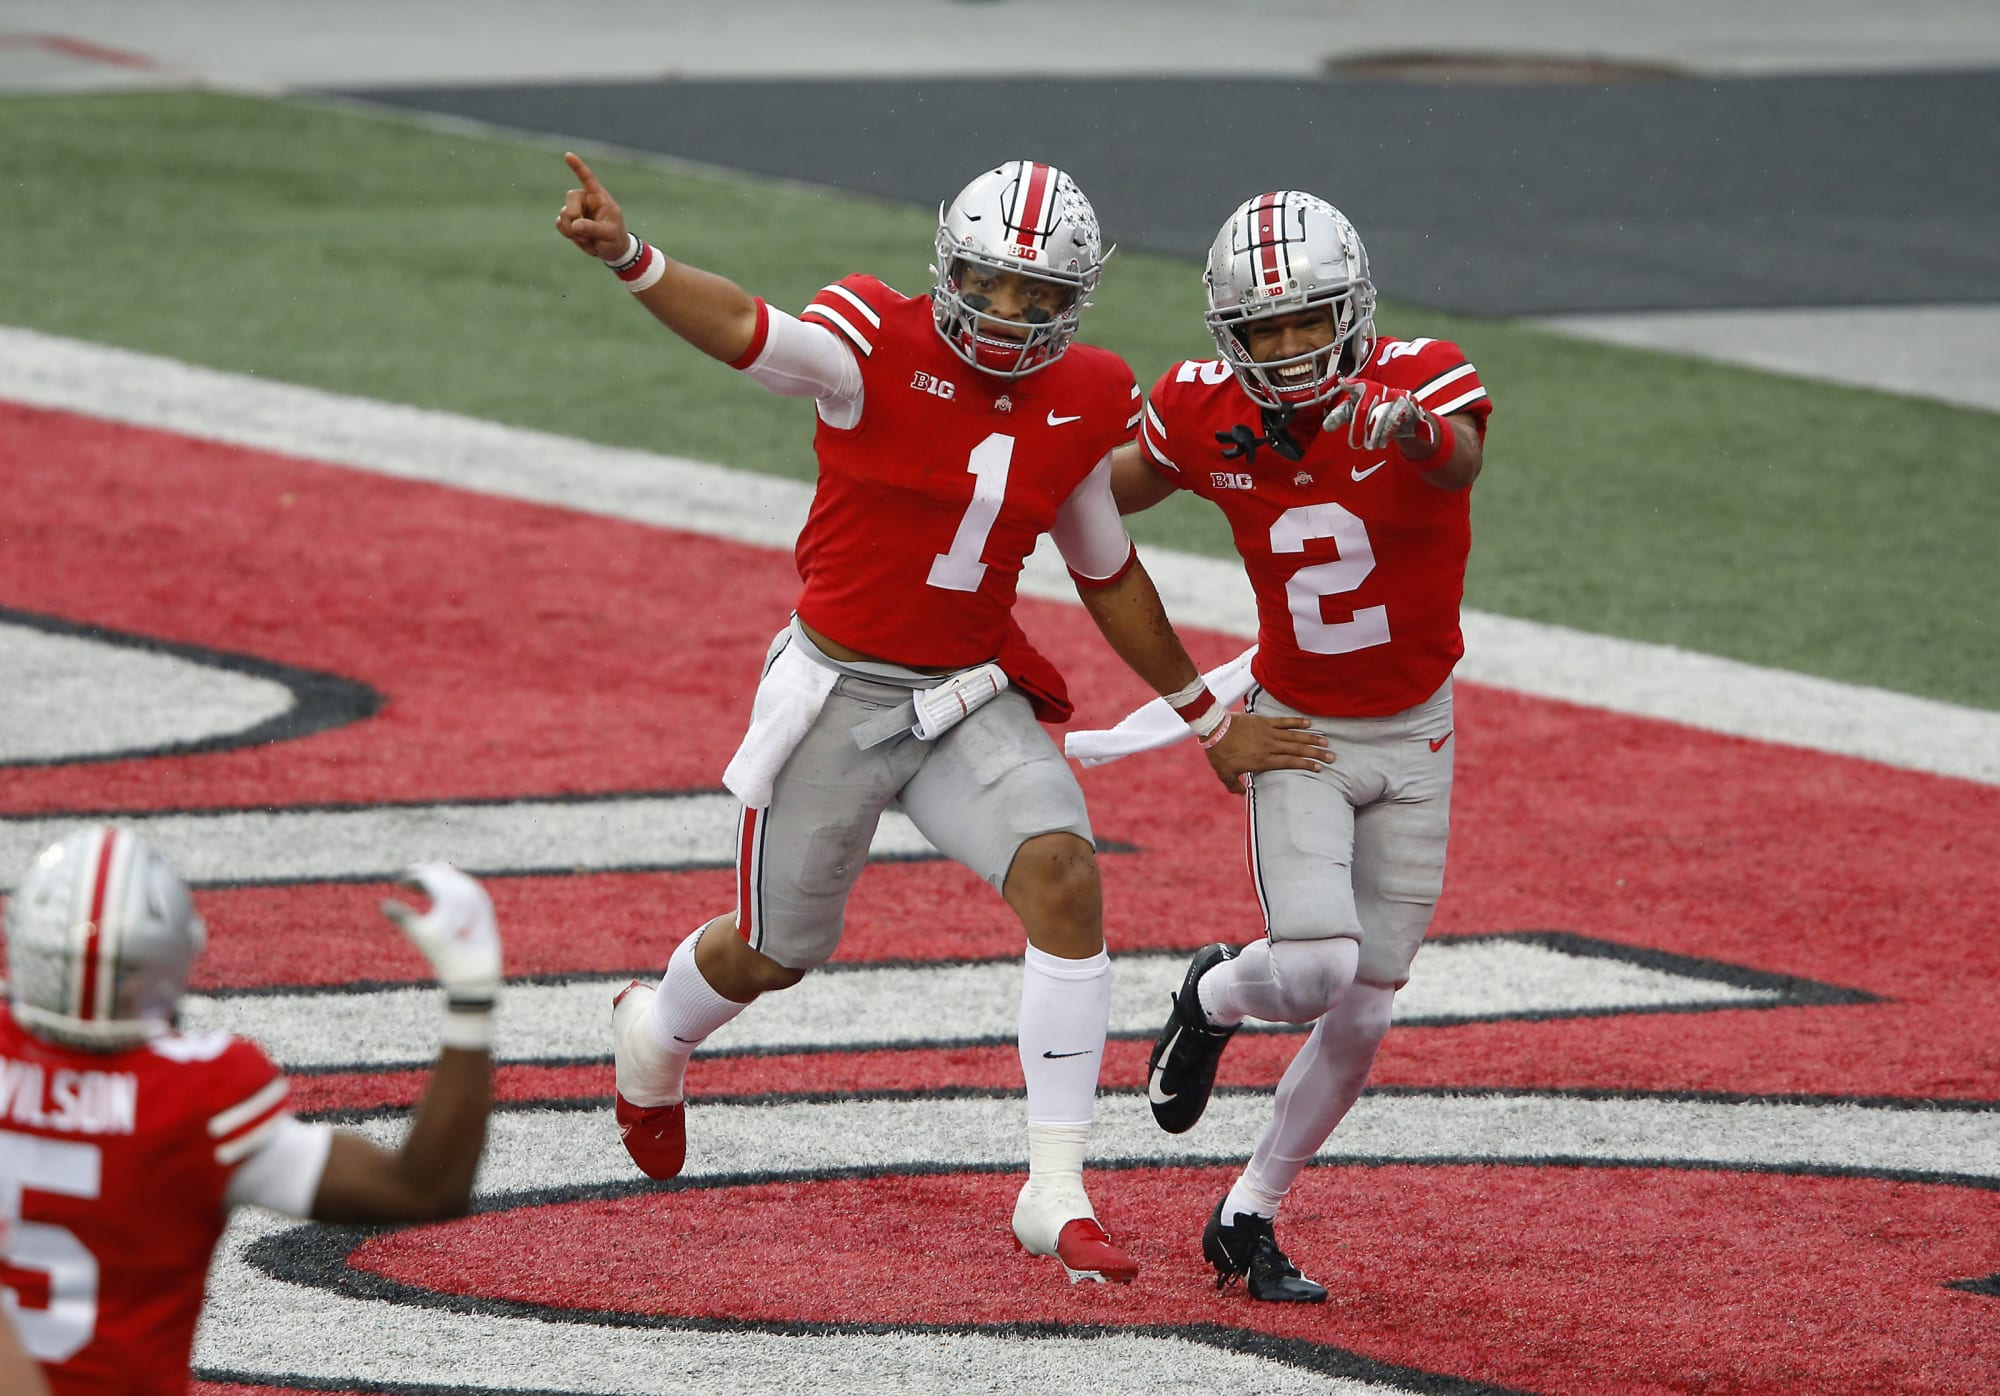 Ohio State might suffer rash of opt-outs